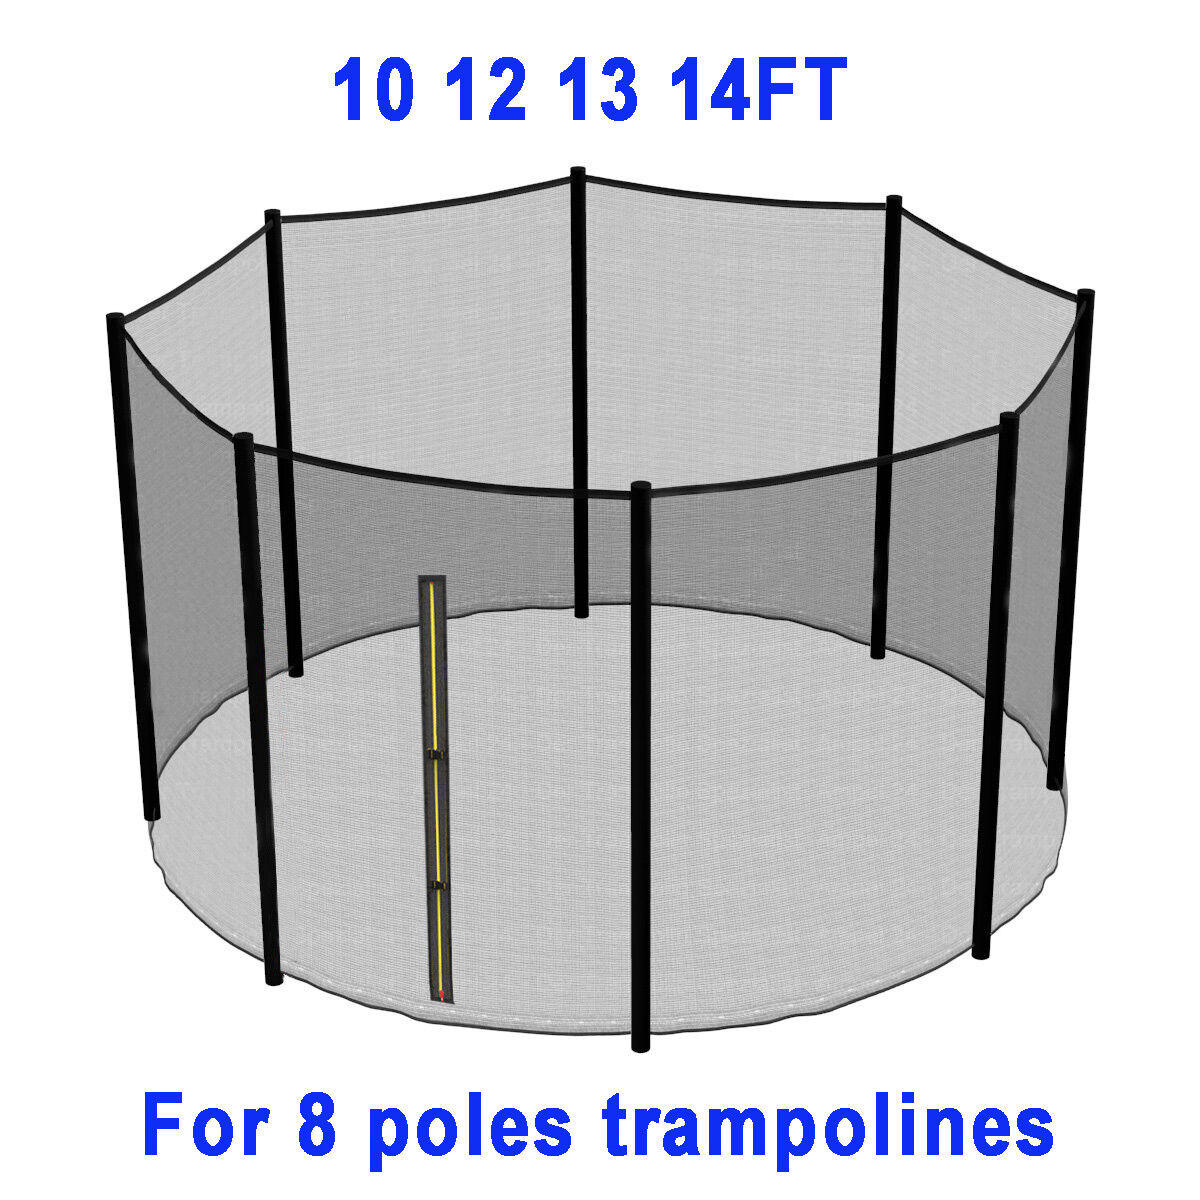 TRAMPOLINE REPLACEMENT PAD PADDING SAFETY NET COVER LADDER SKIRT 6 8 10 12 14FT - 4